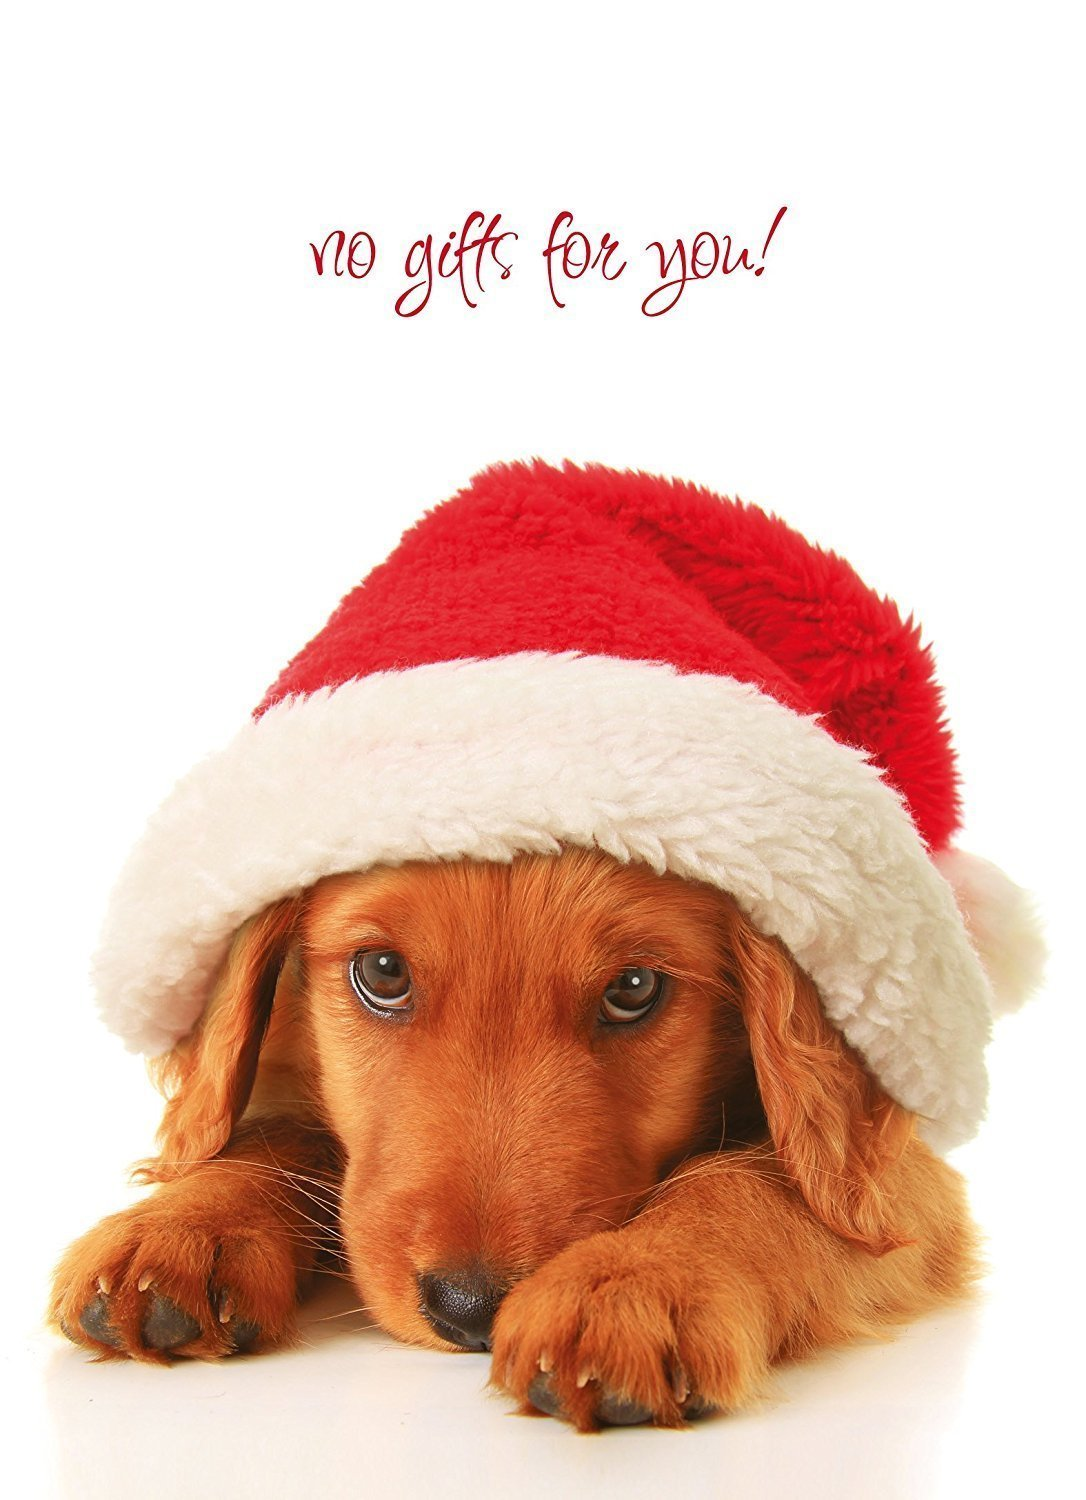 Cheap christmas cards pets find christmas cards pets deals on line get quotations 16 pack of 1 design per order cute adorable christmas holiday animal pets dog or m4hsunfo